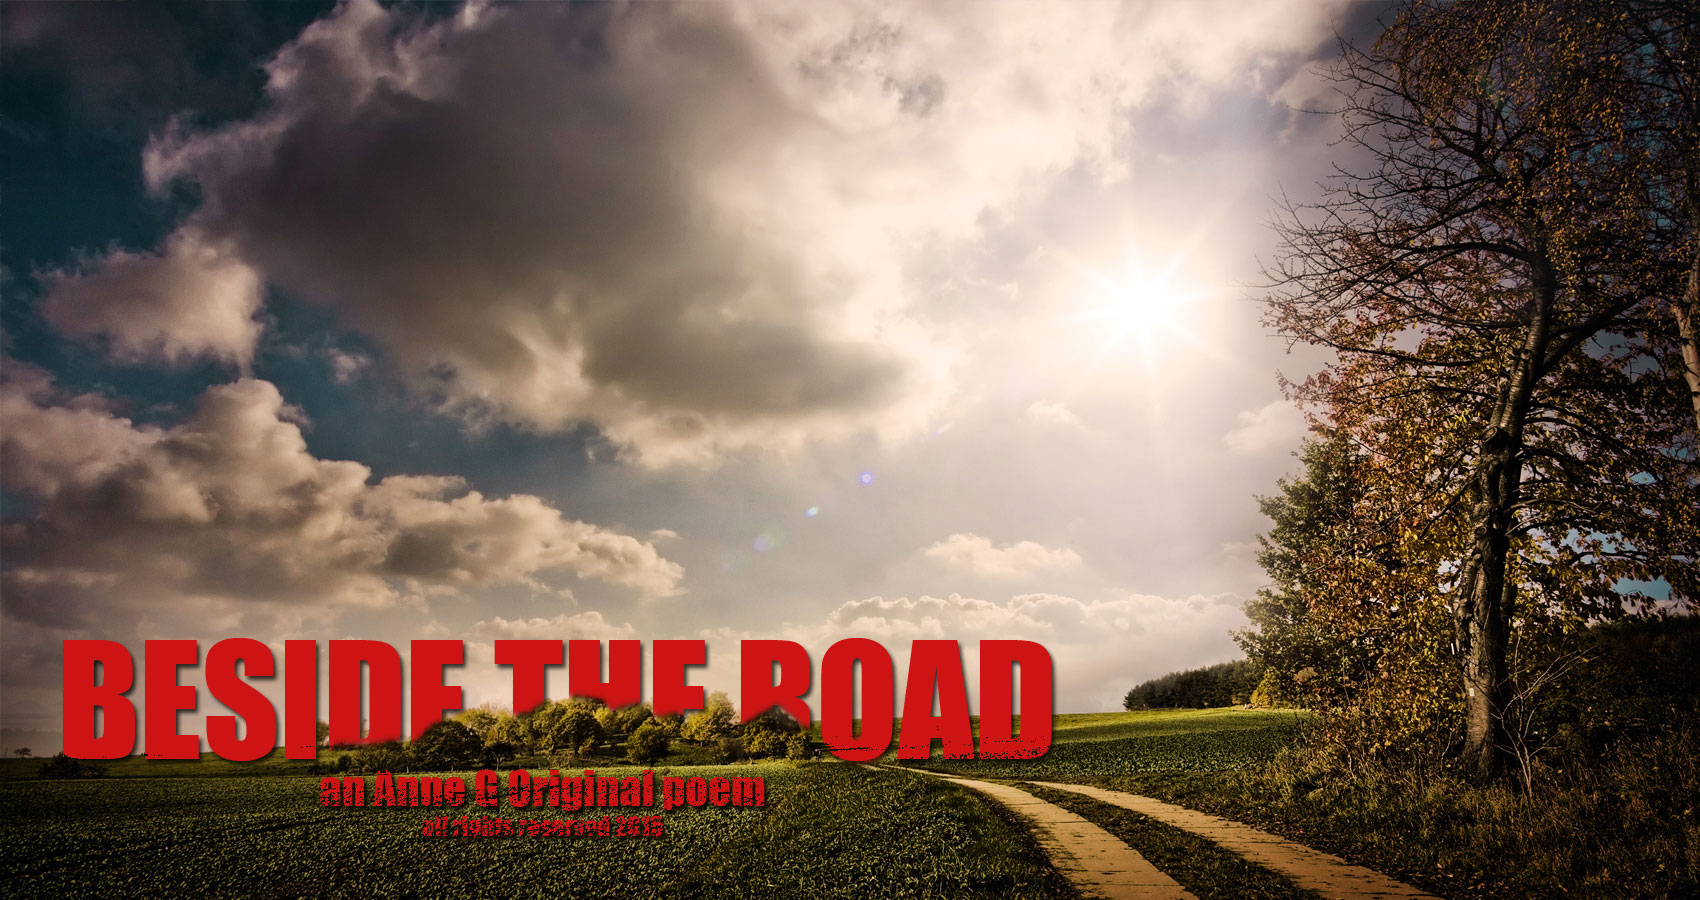 Beside The Road by Anne G at spillwords.com original poetry